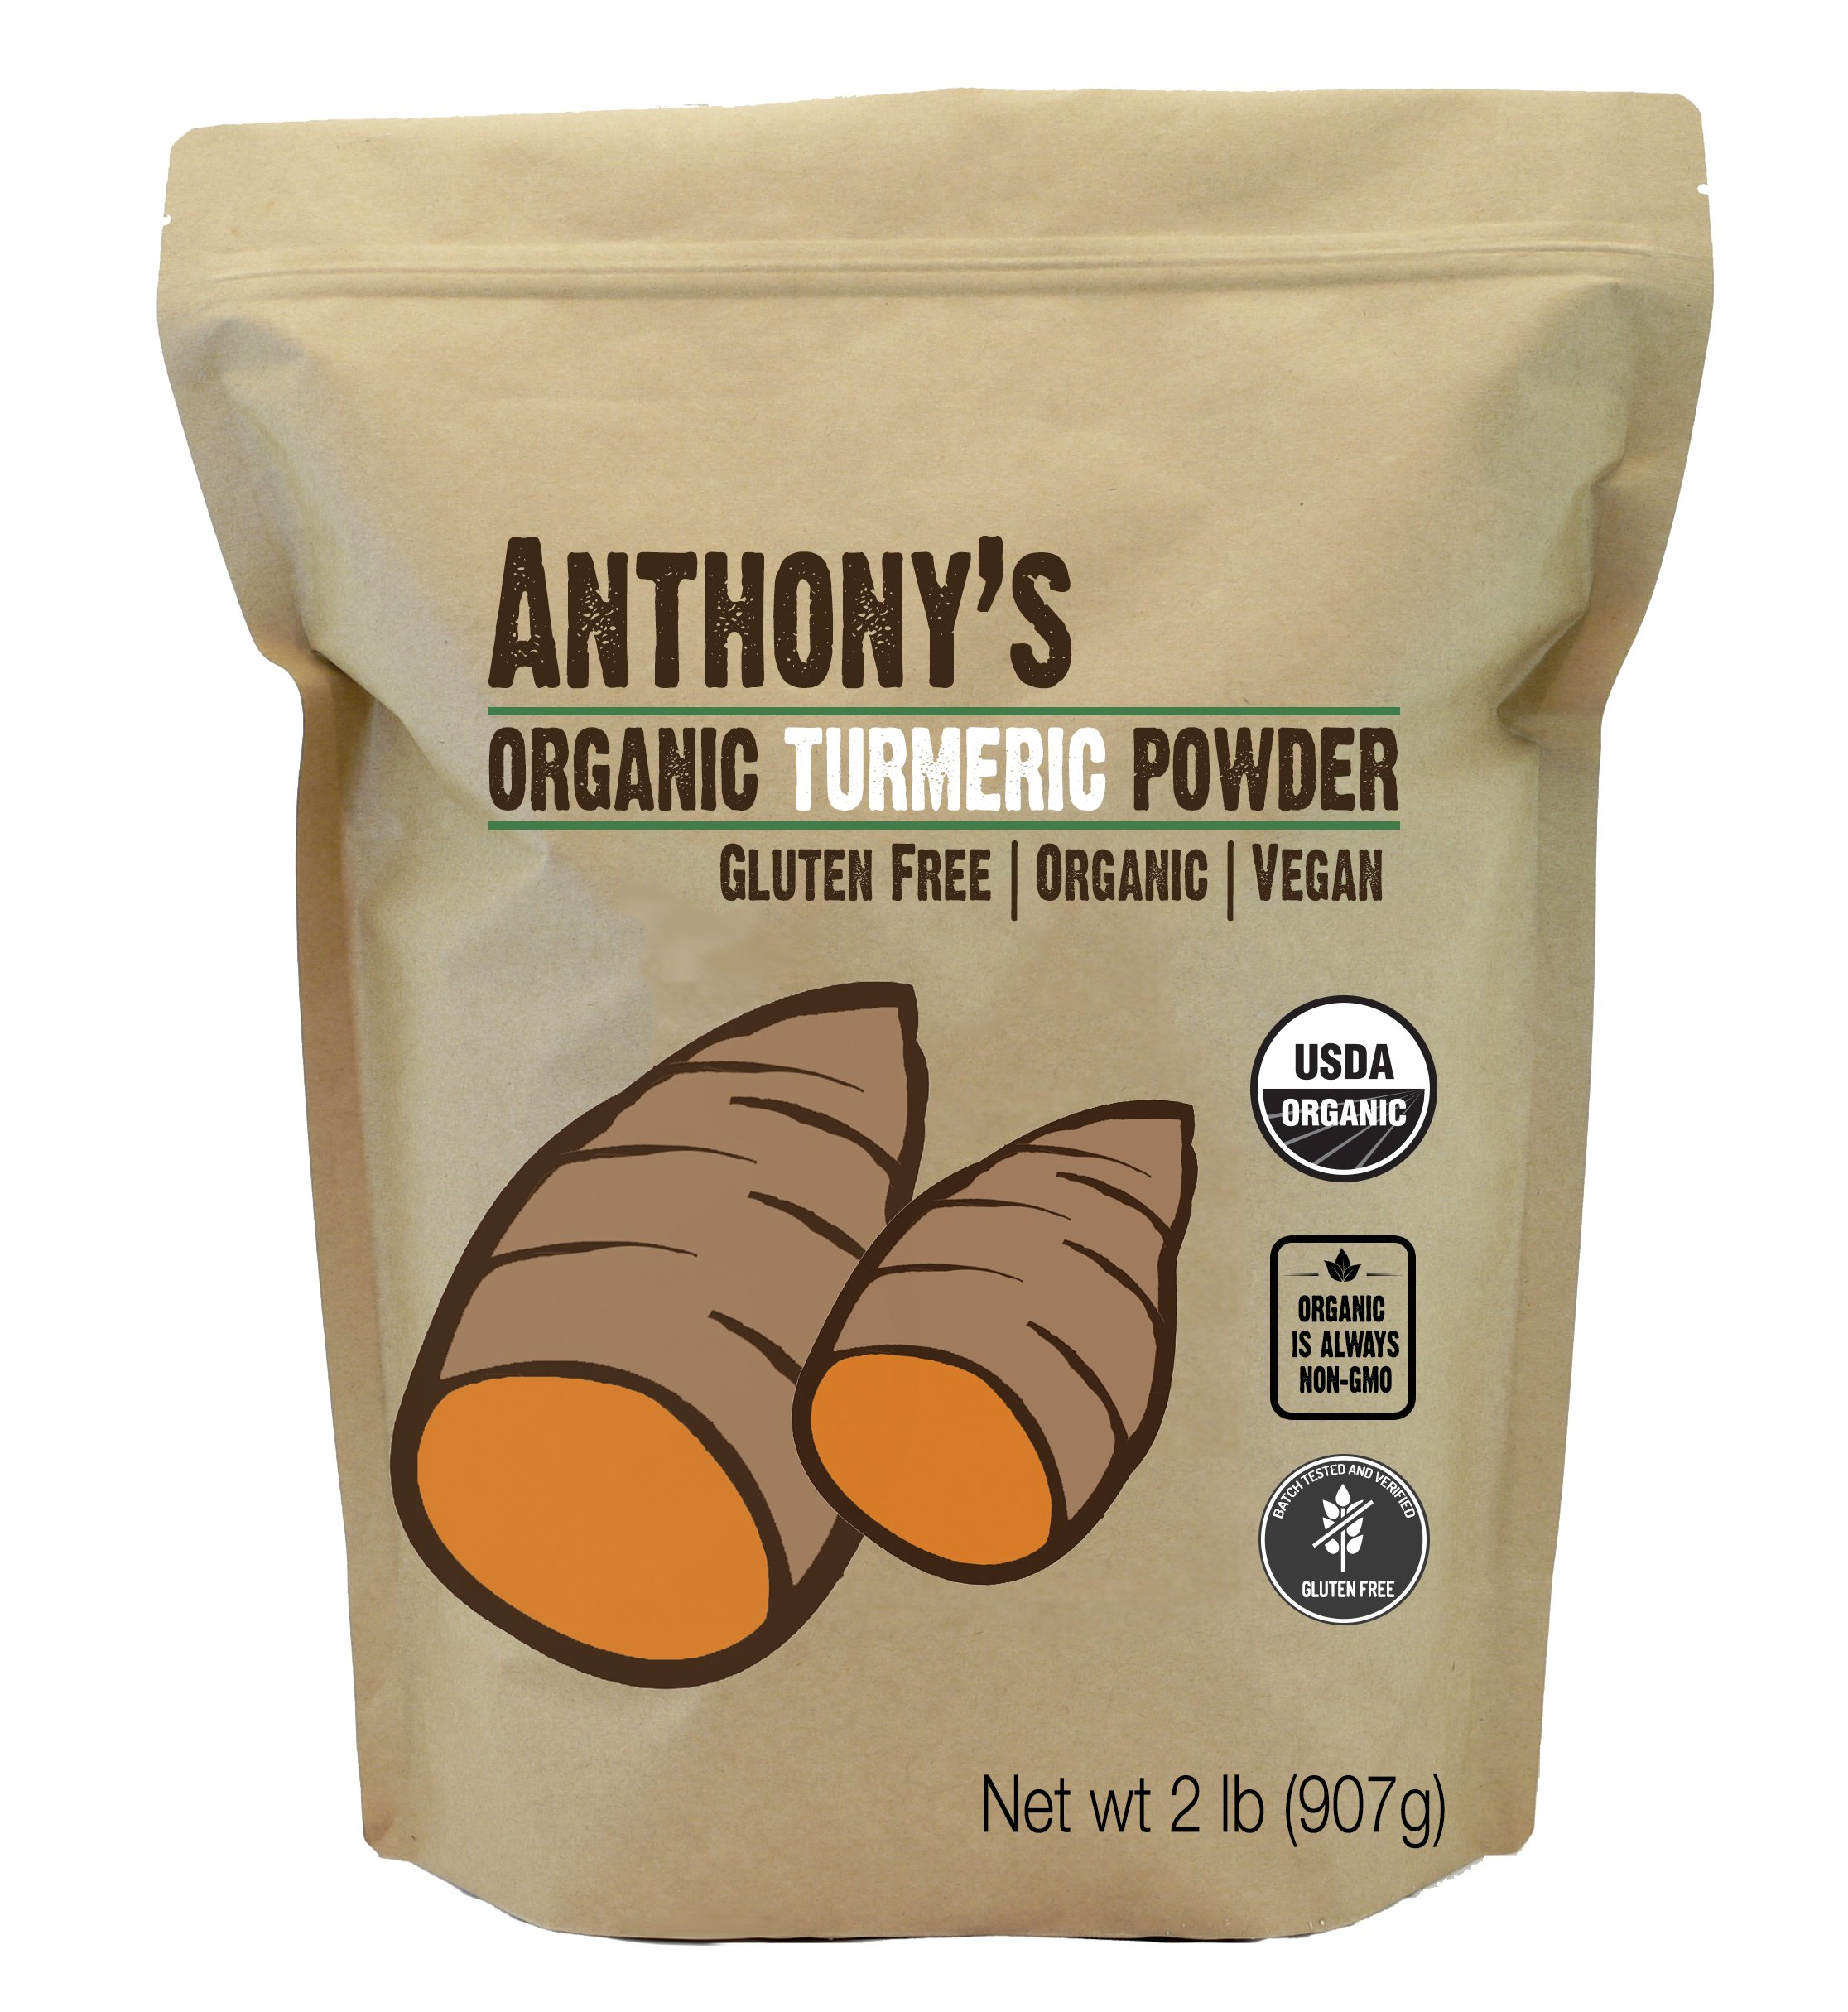 Organic Turmeric Root Powder (2lb) by Anthony's, Curcumin & Non-GMO (32 ounces)